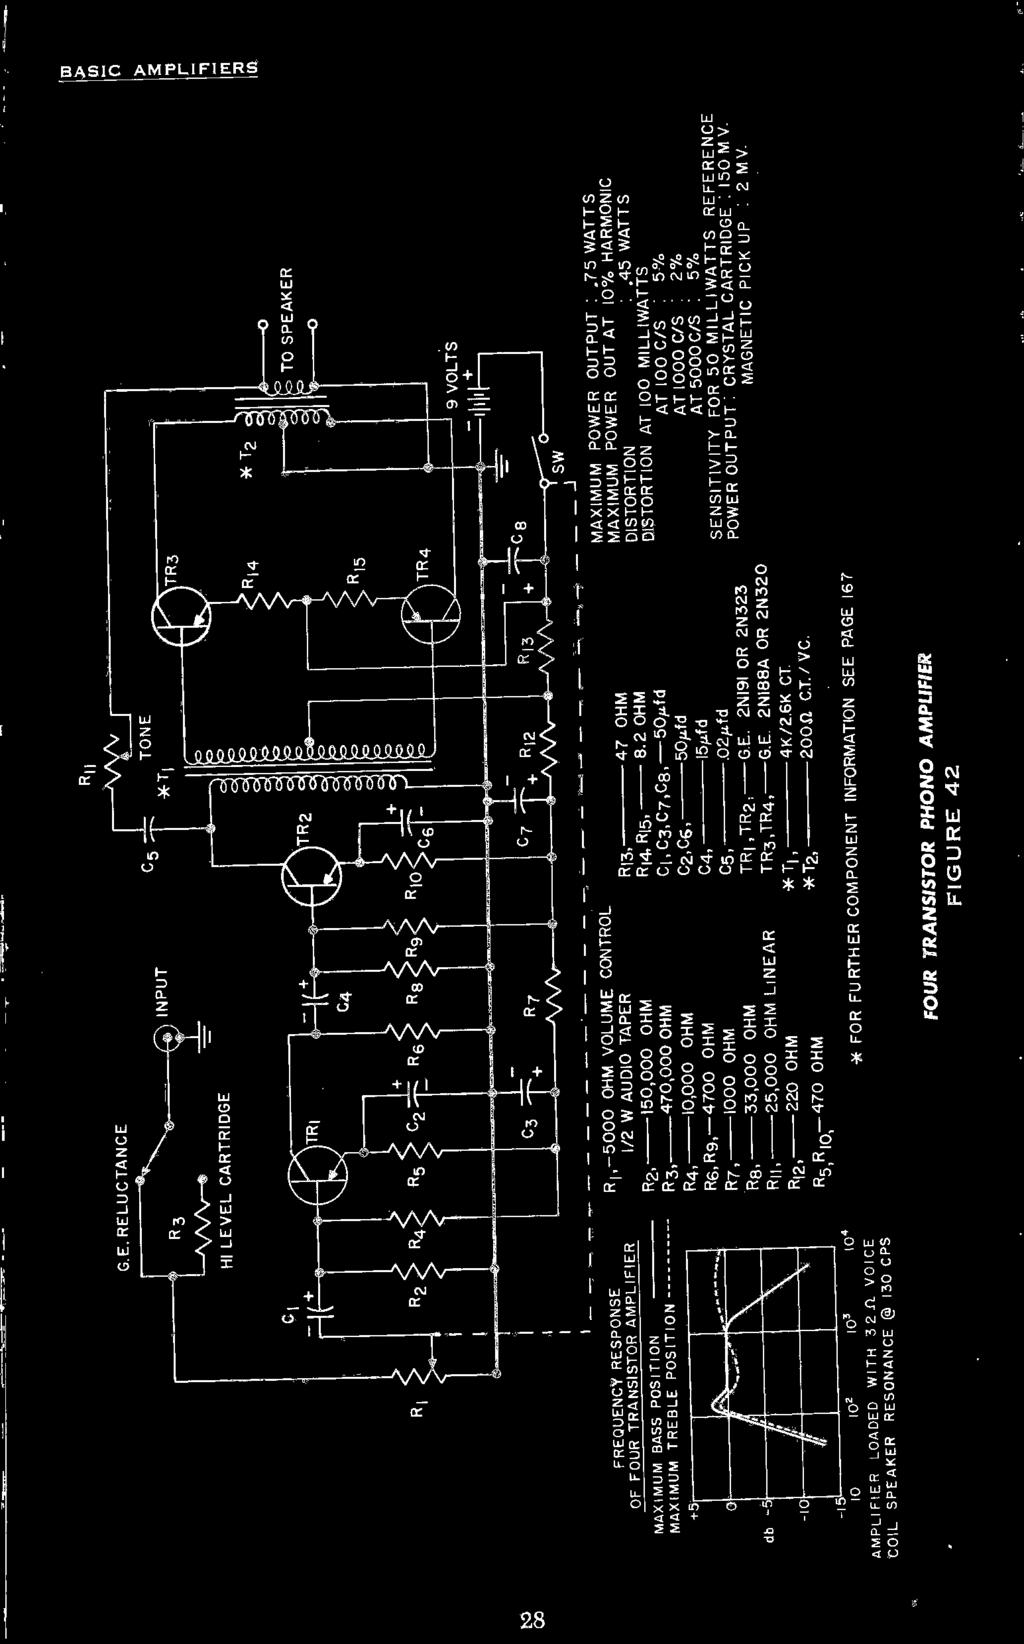 Contents Transistor Construction Techniques 8 Major Parameters 11 K6 700 Watt Audio Amplifier And Switching Power Supply Ohm 82 Ci C3c7c8 501t